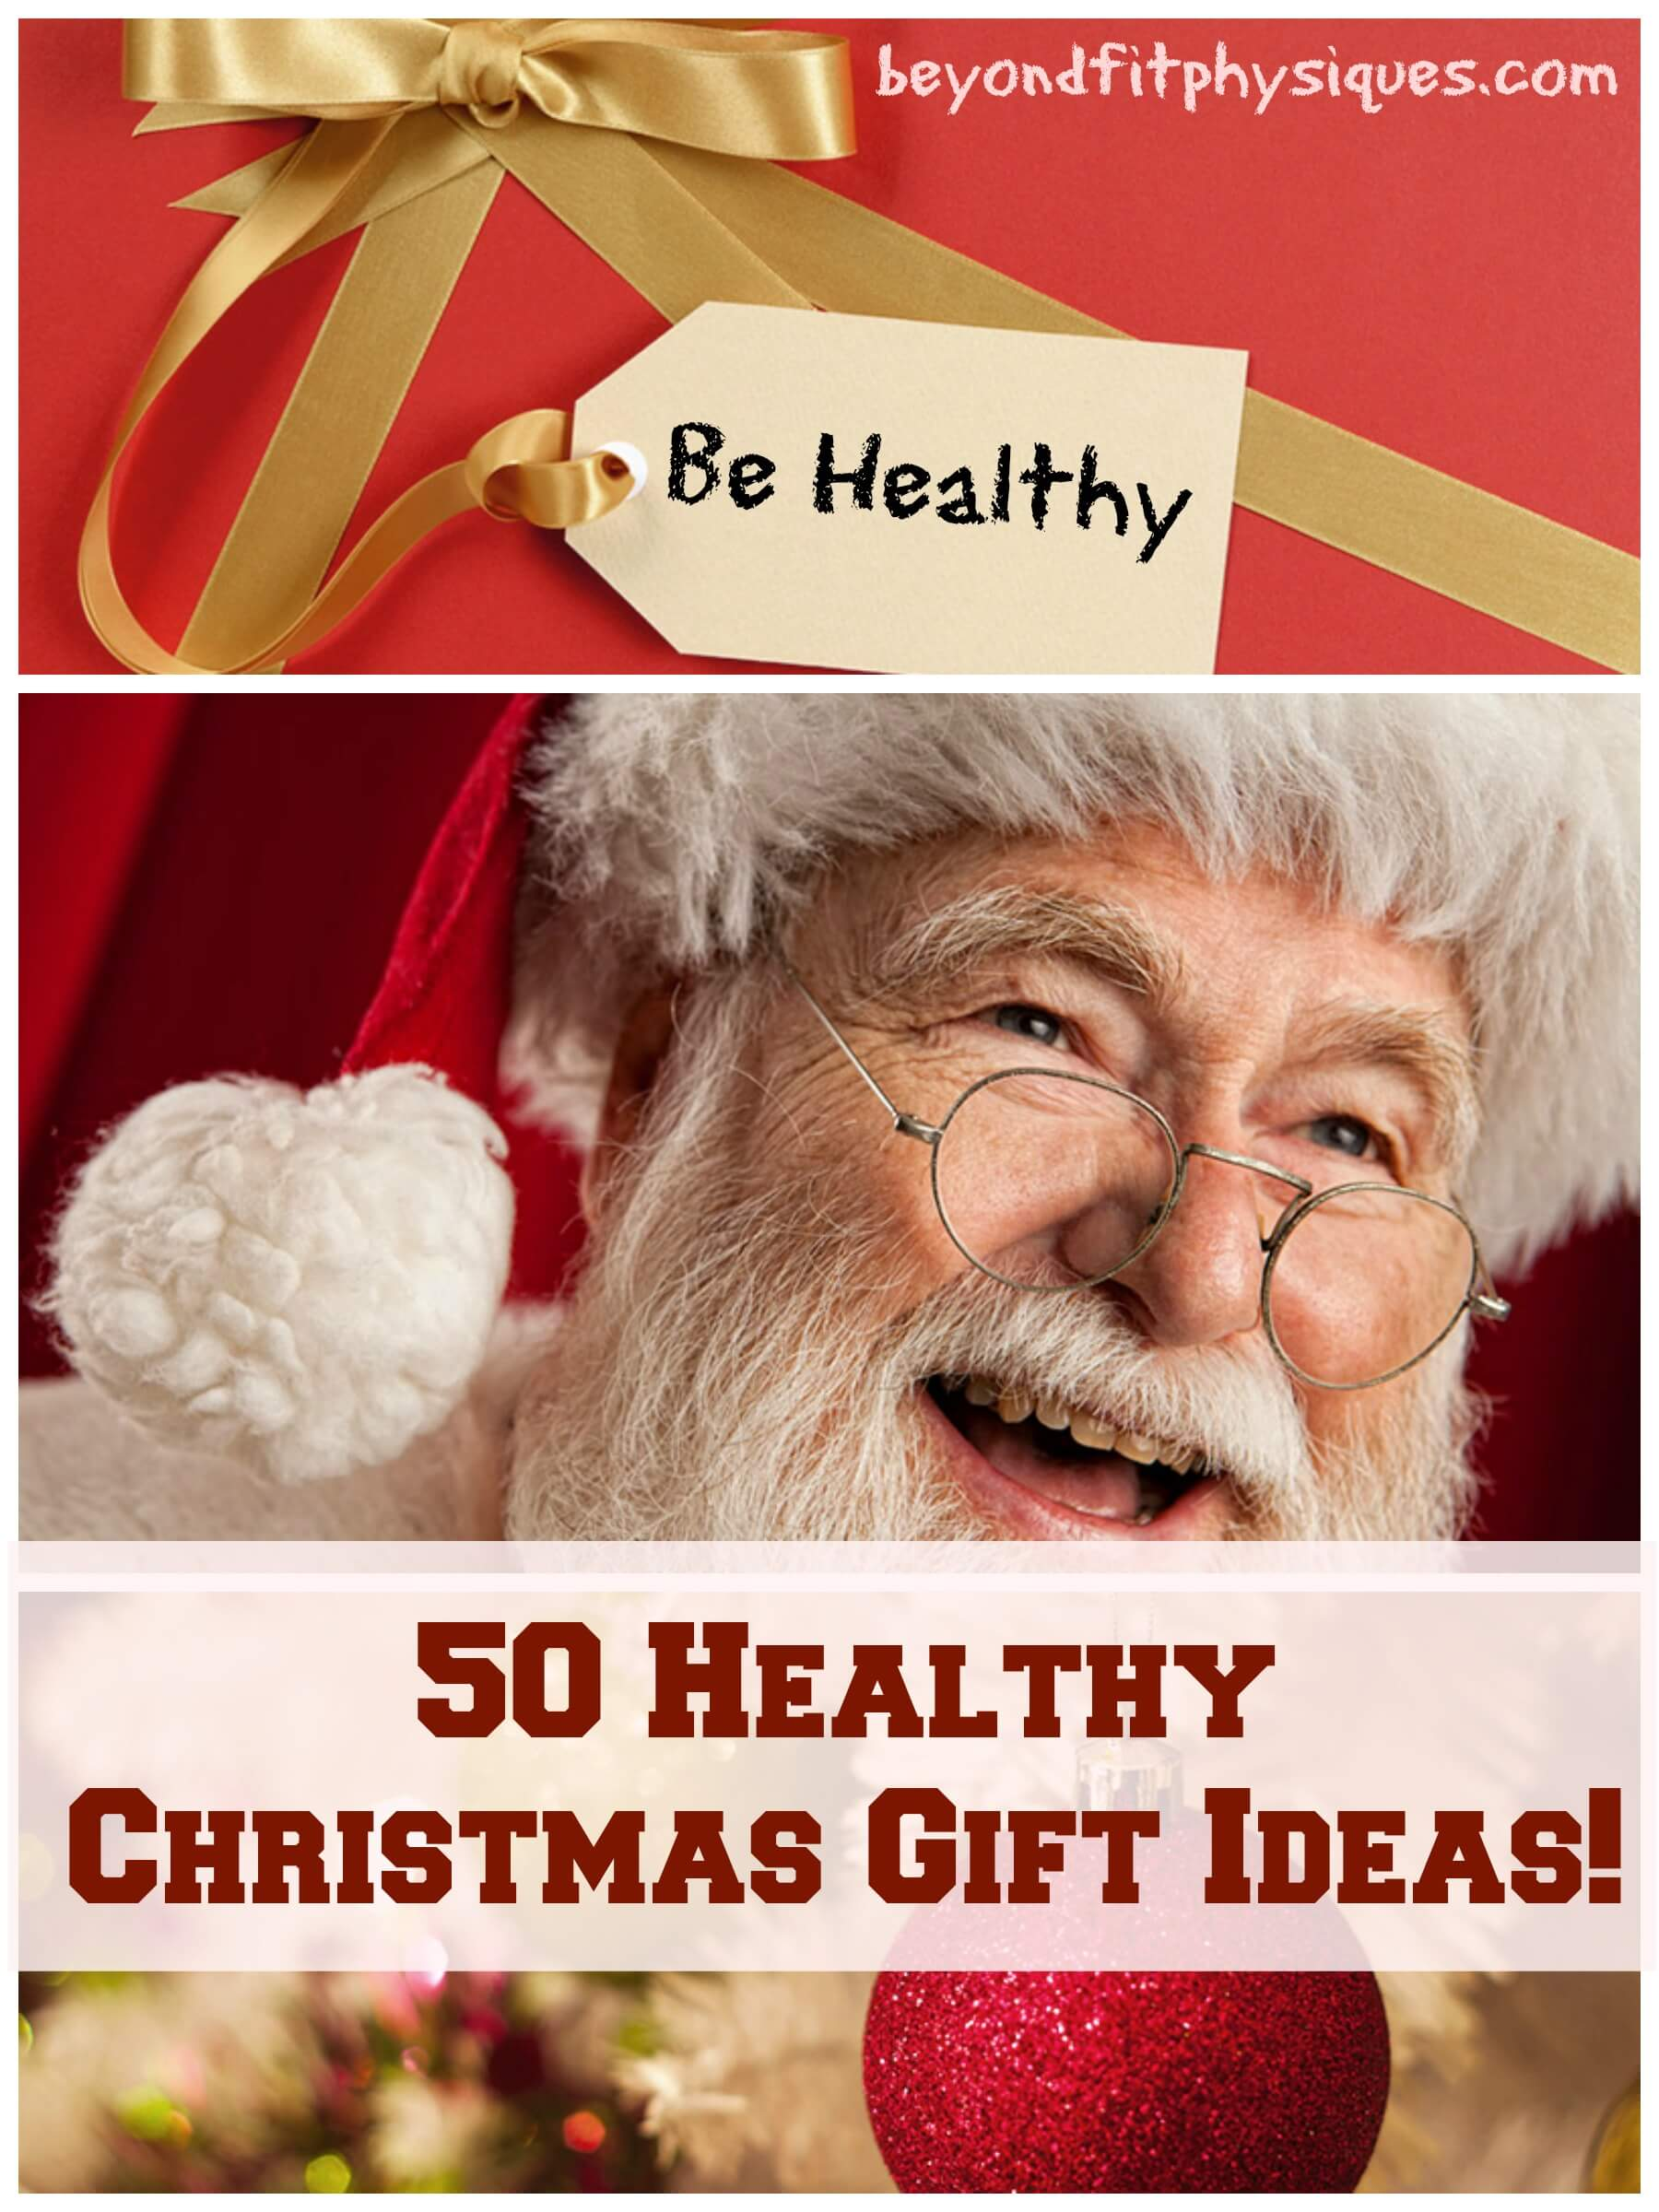 50healthygifts